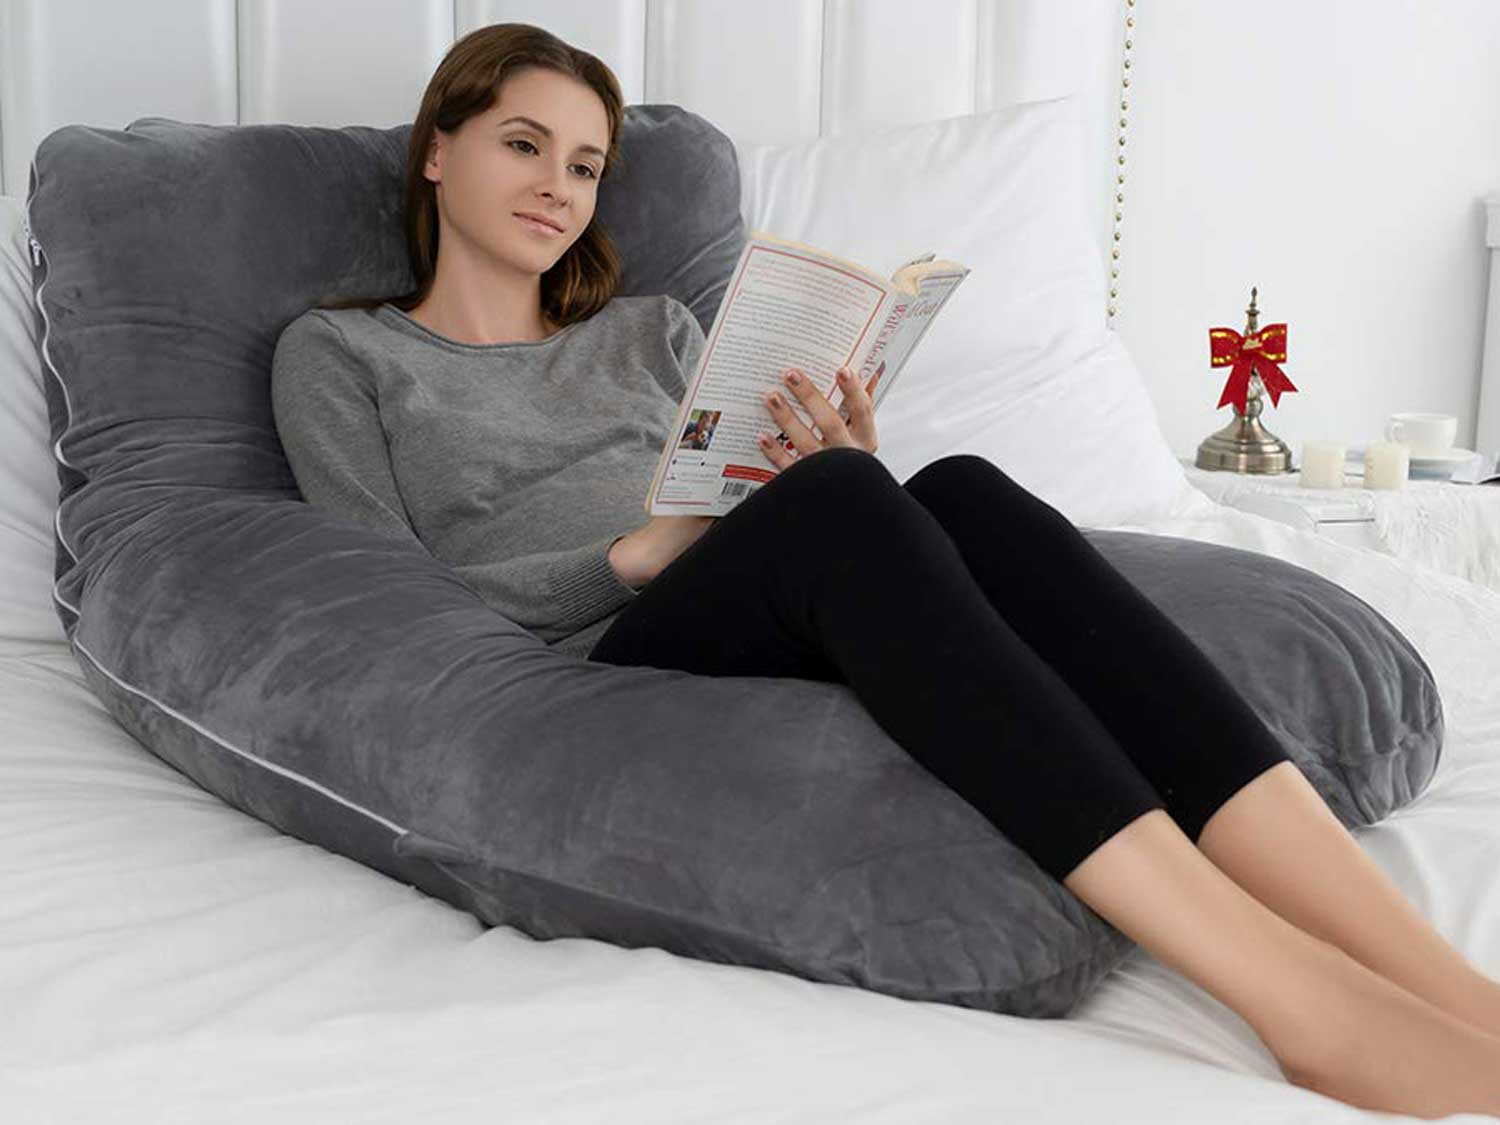 Woman reads and sits on body pillow.